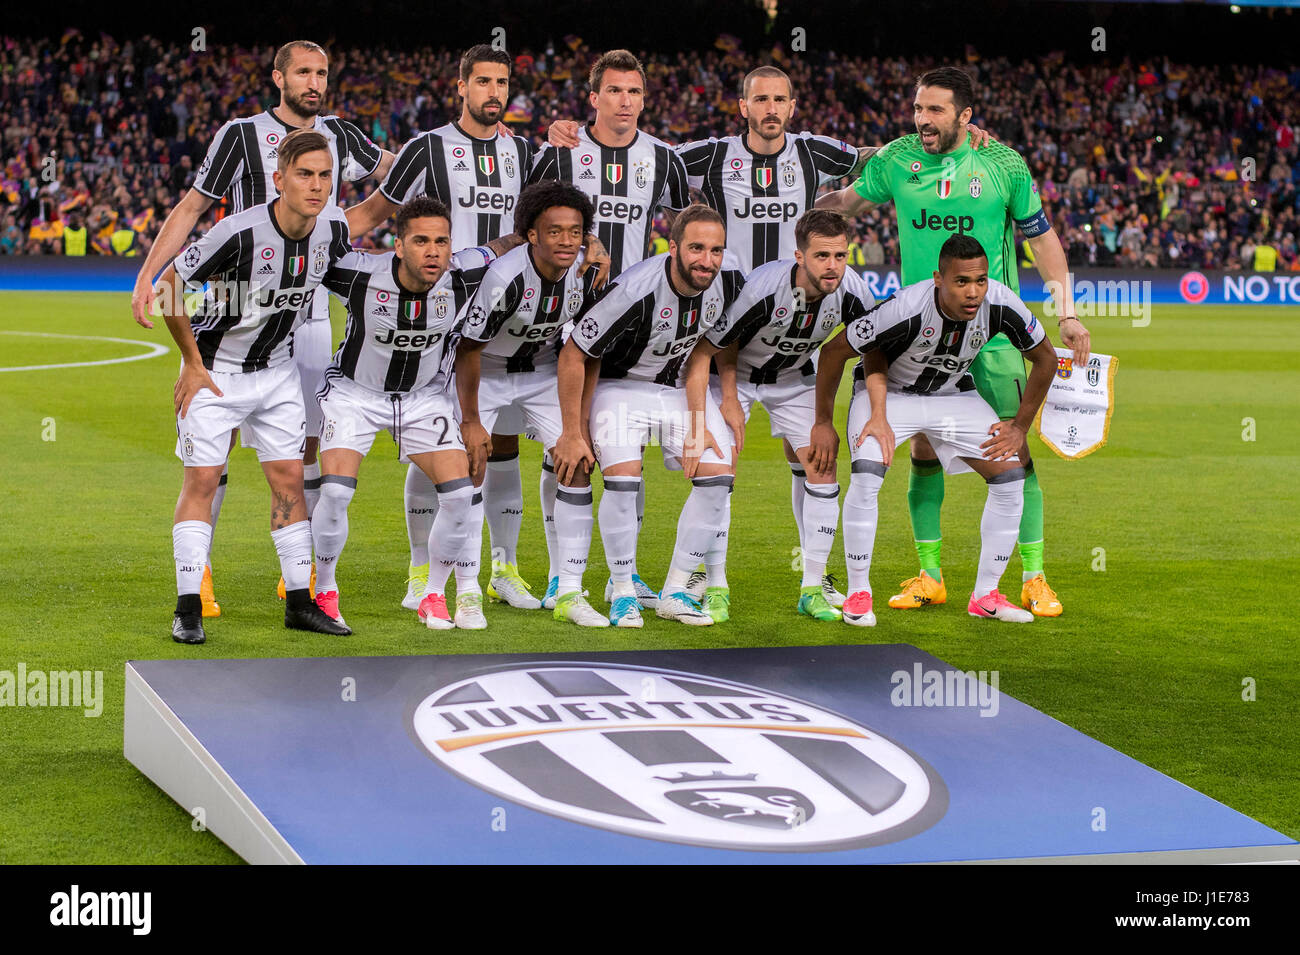 Barcelona Spain 19th Apr 2017 Juventus Team Group Line Up Stock Photo Alamy